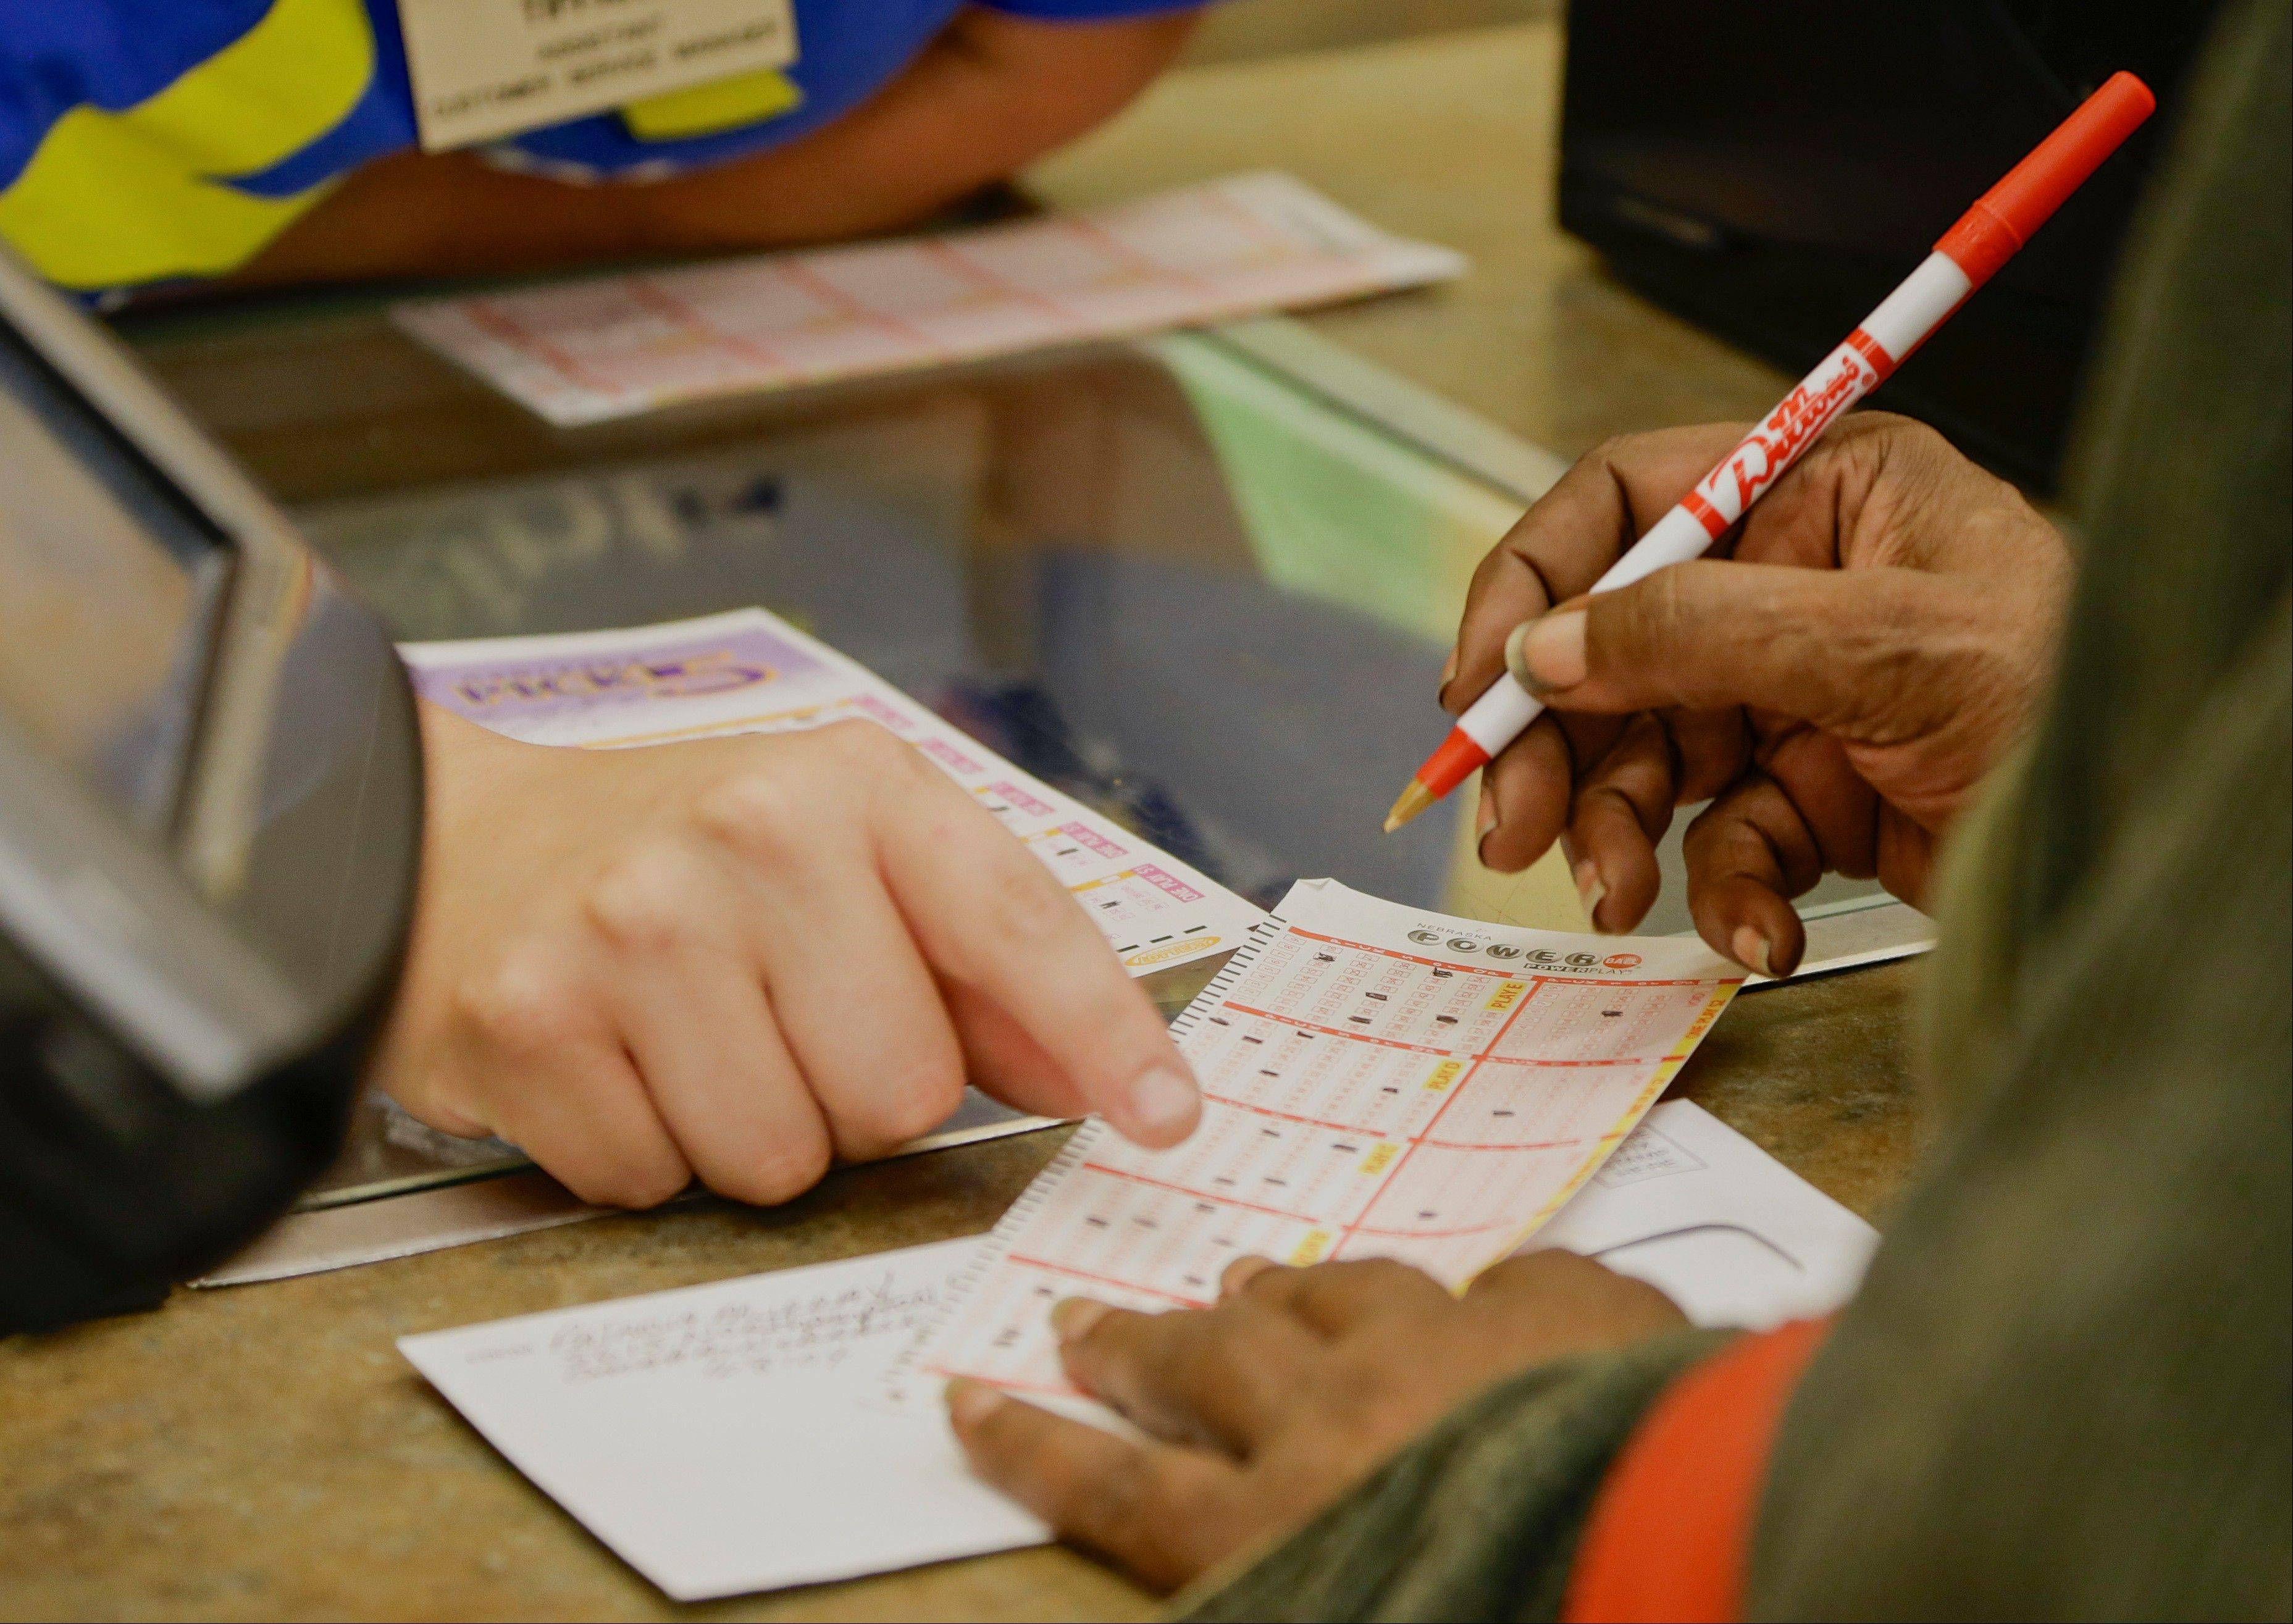 A customer fills out her powerball form at a Baker�s supermarket in Omaha, Neb., Tuesday, Aug. 6, 2013. Wednesday�s Powerball jackpot will be worth $425 million.